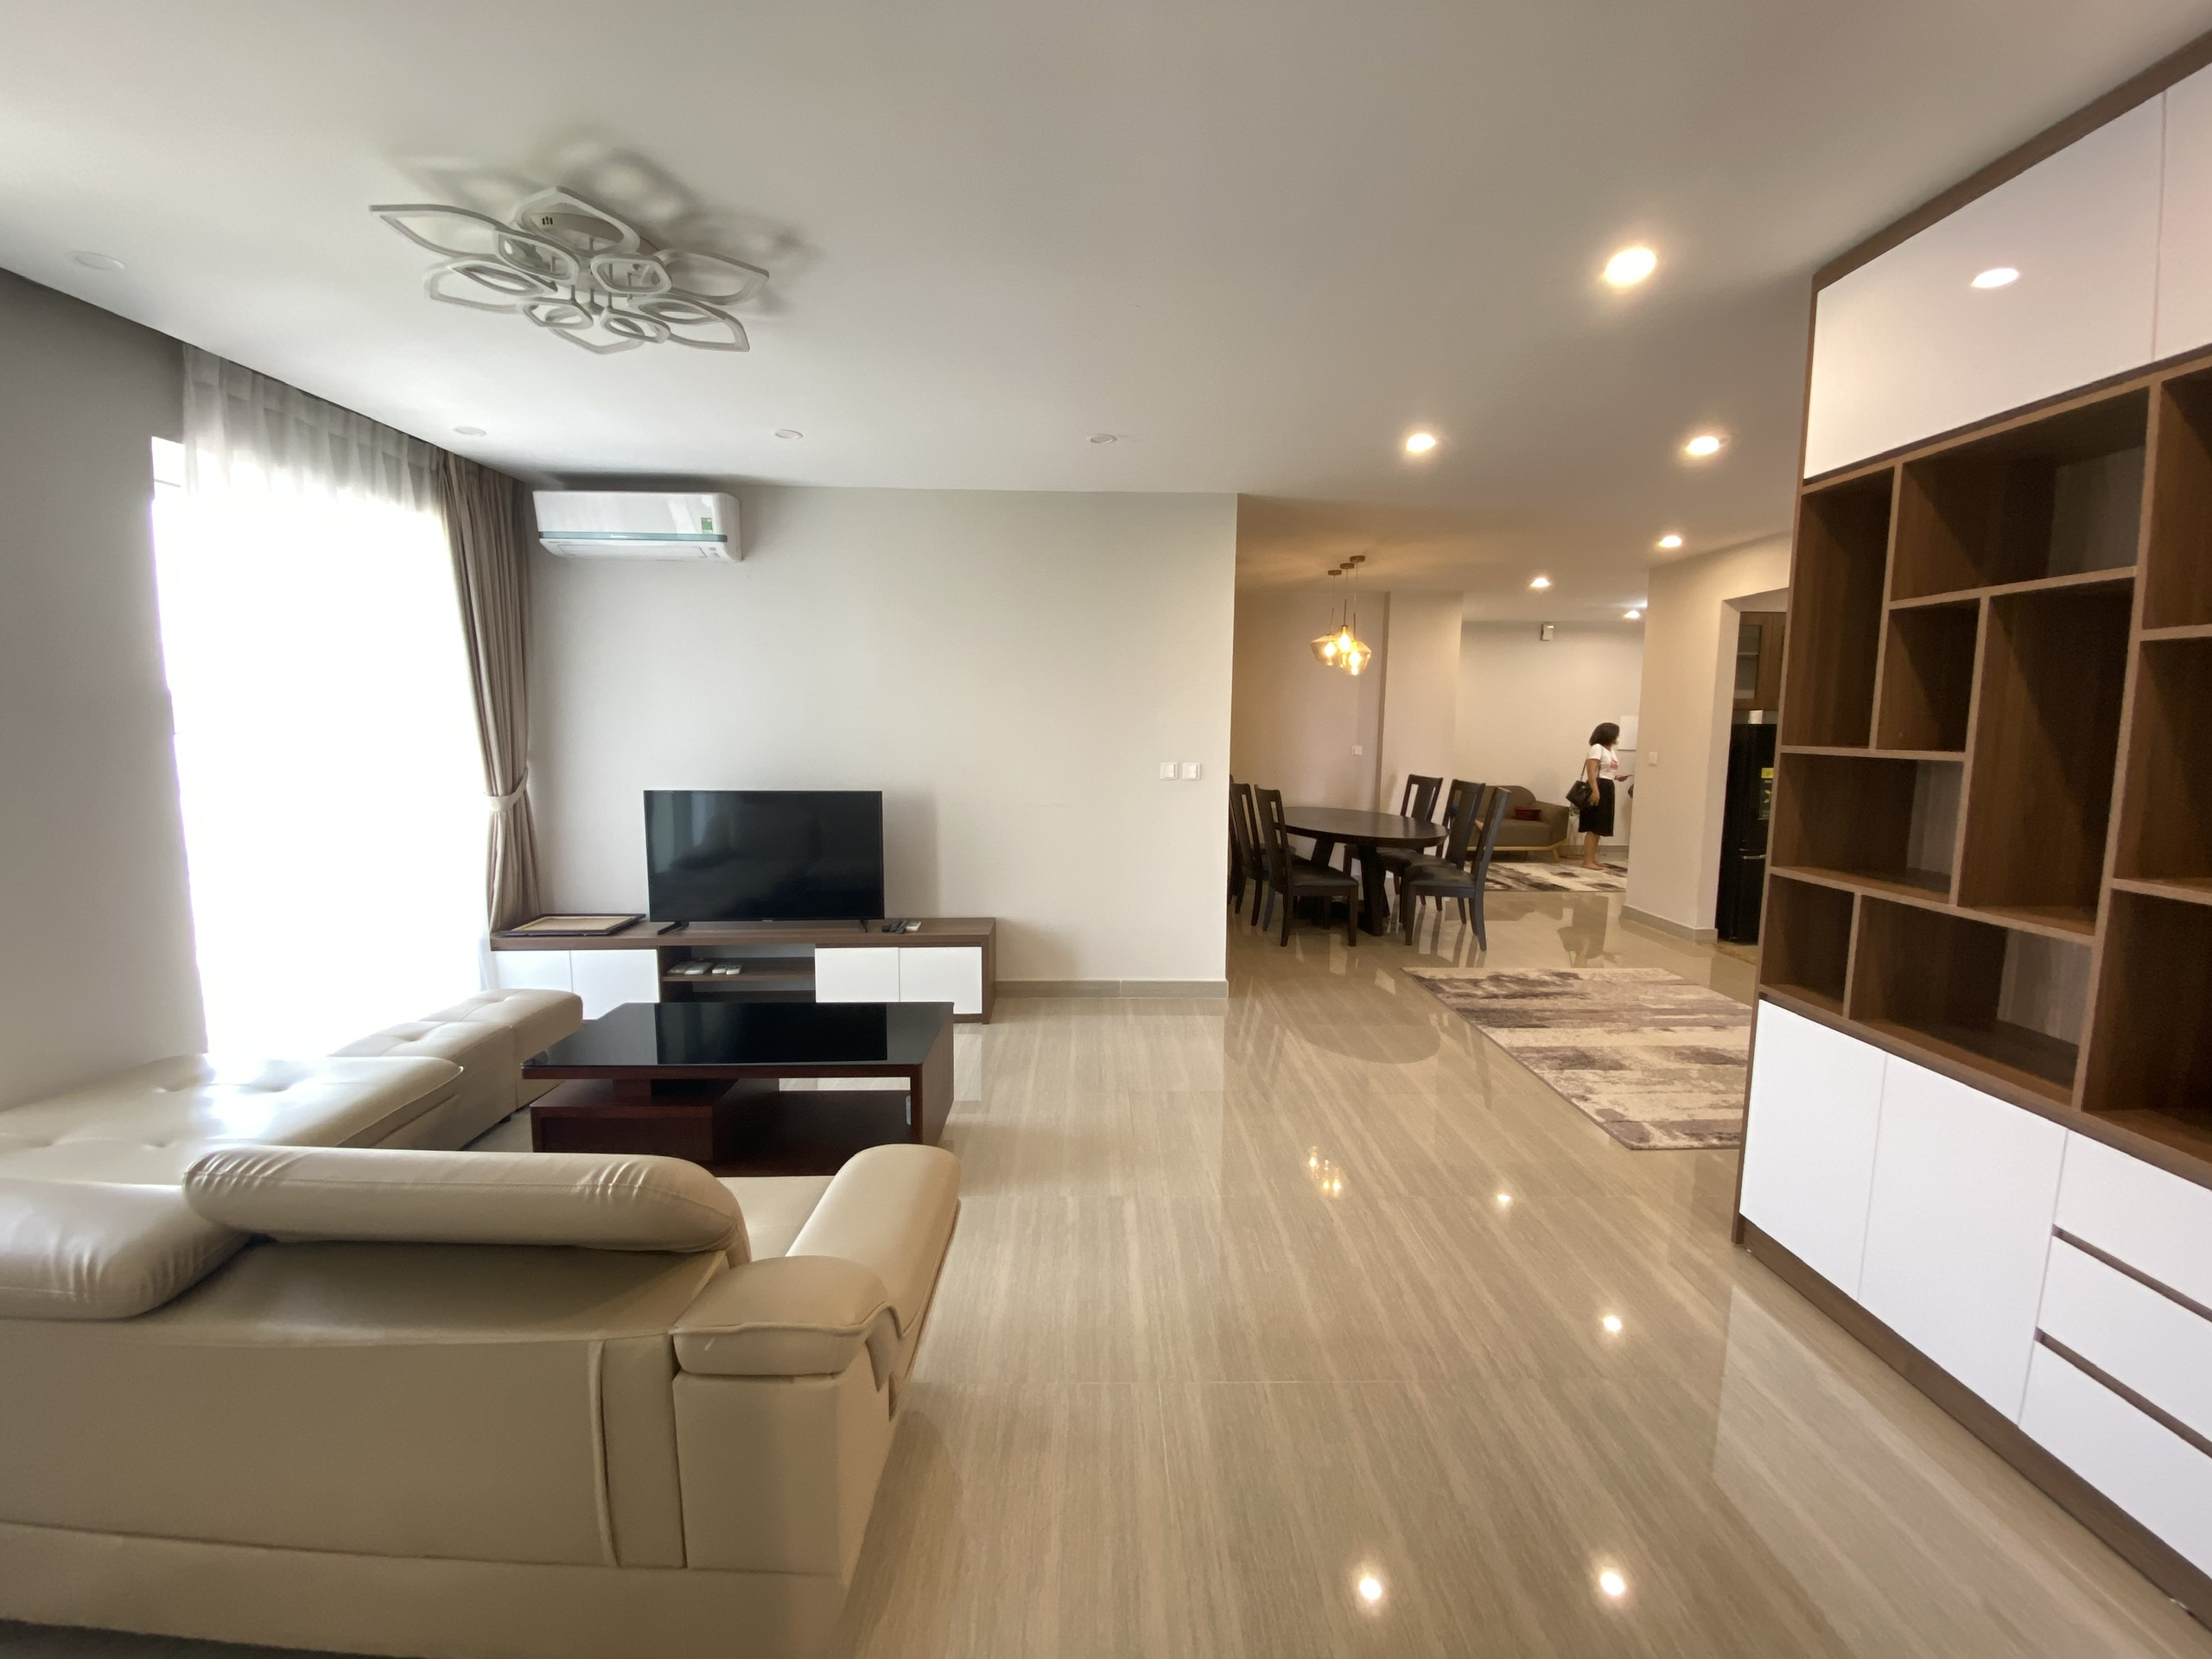 Nice apartment for rent at L3 biulding in Ciputra, area of 154 sqm, design 3 bedrooms, golf course view. Good price. 10